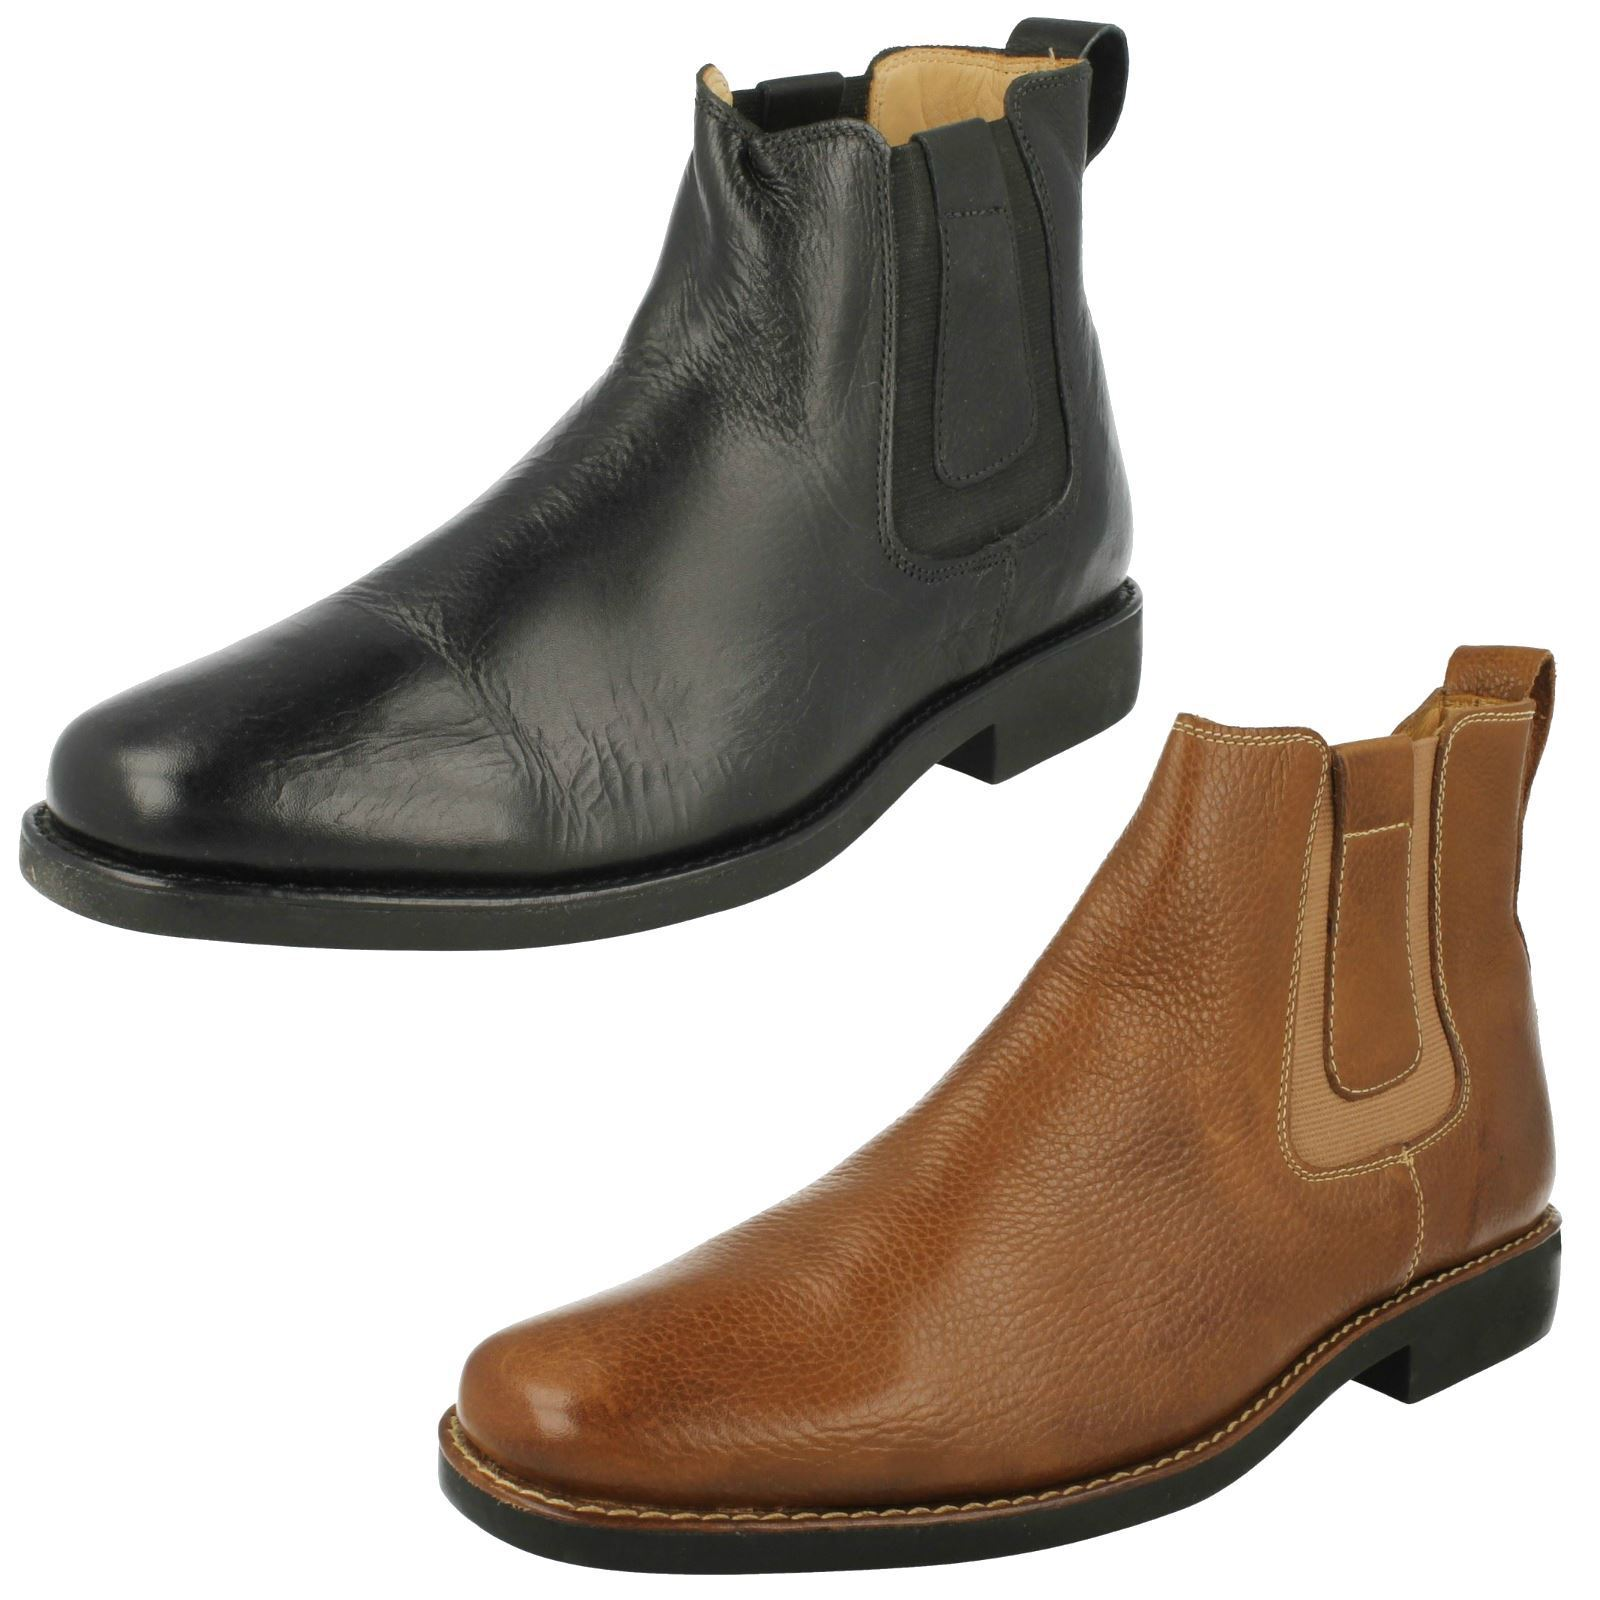 Mens Anatomic Leather Ankle Boots - Natal